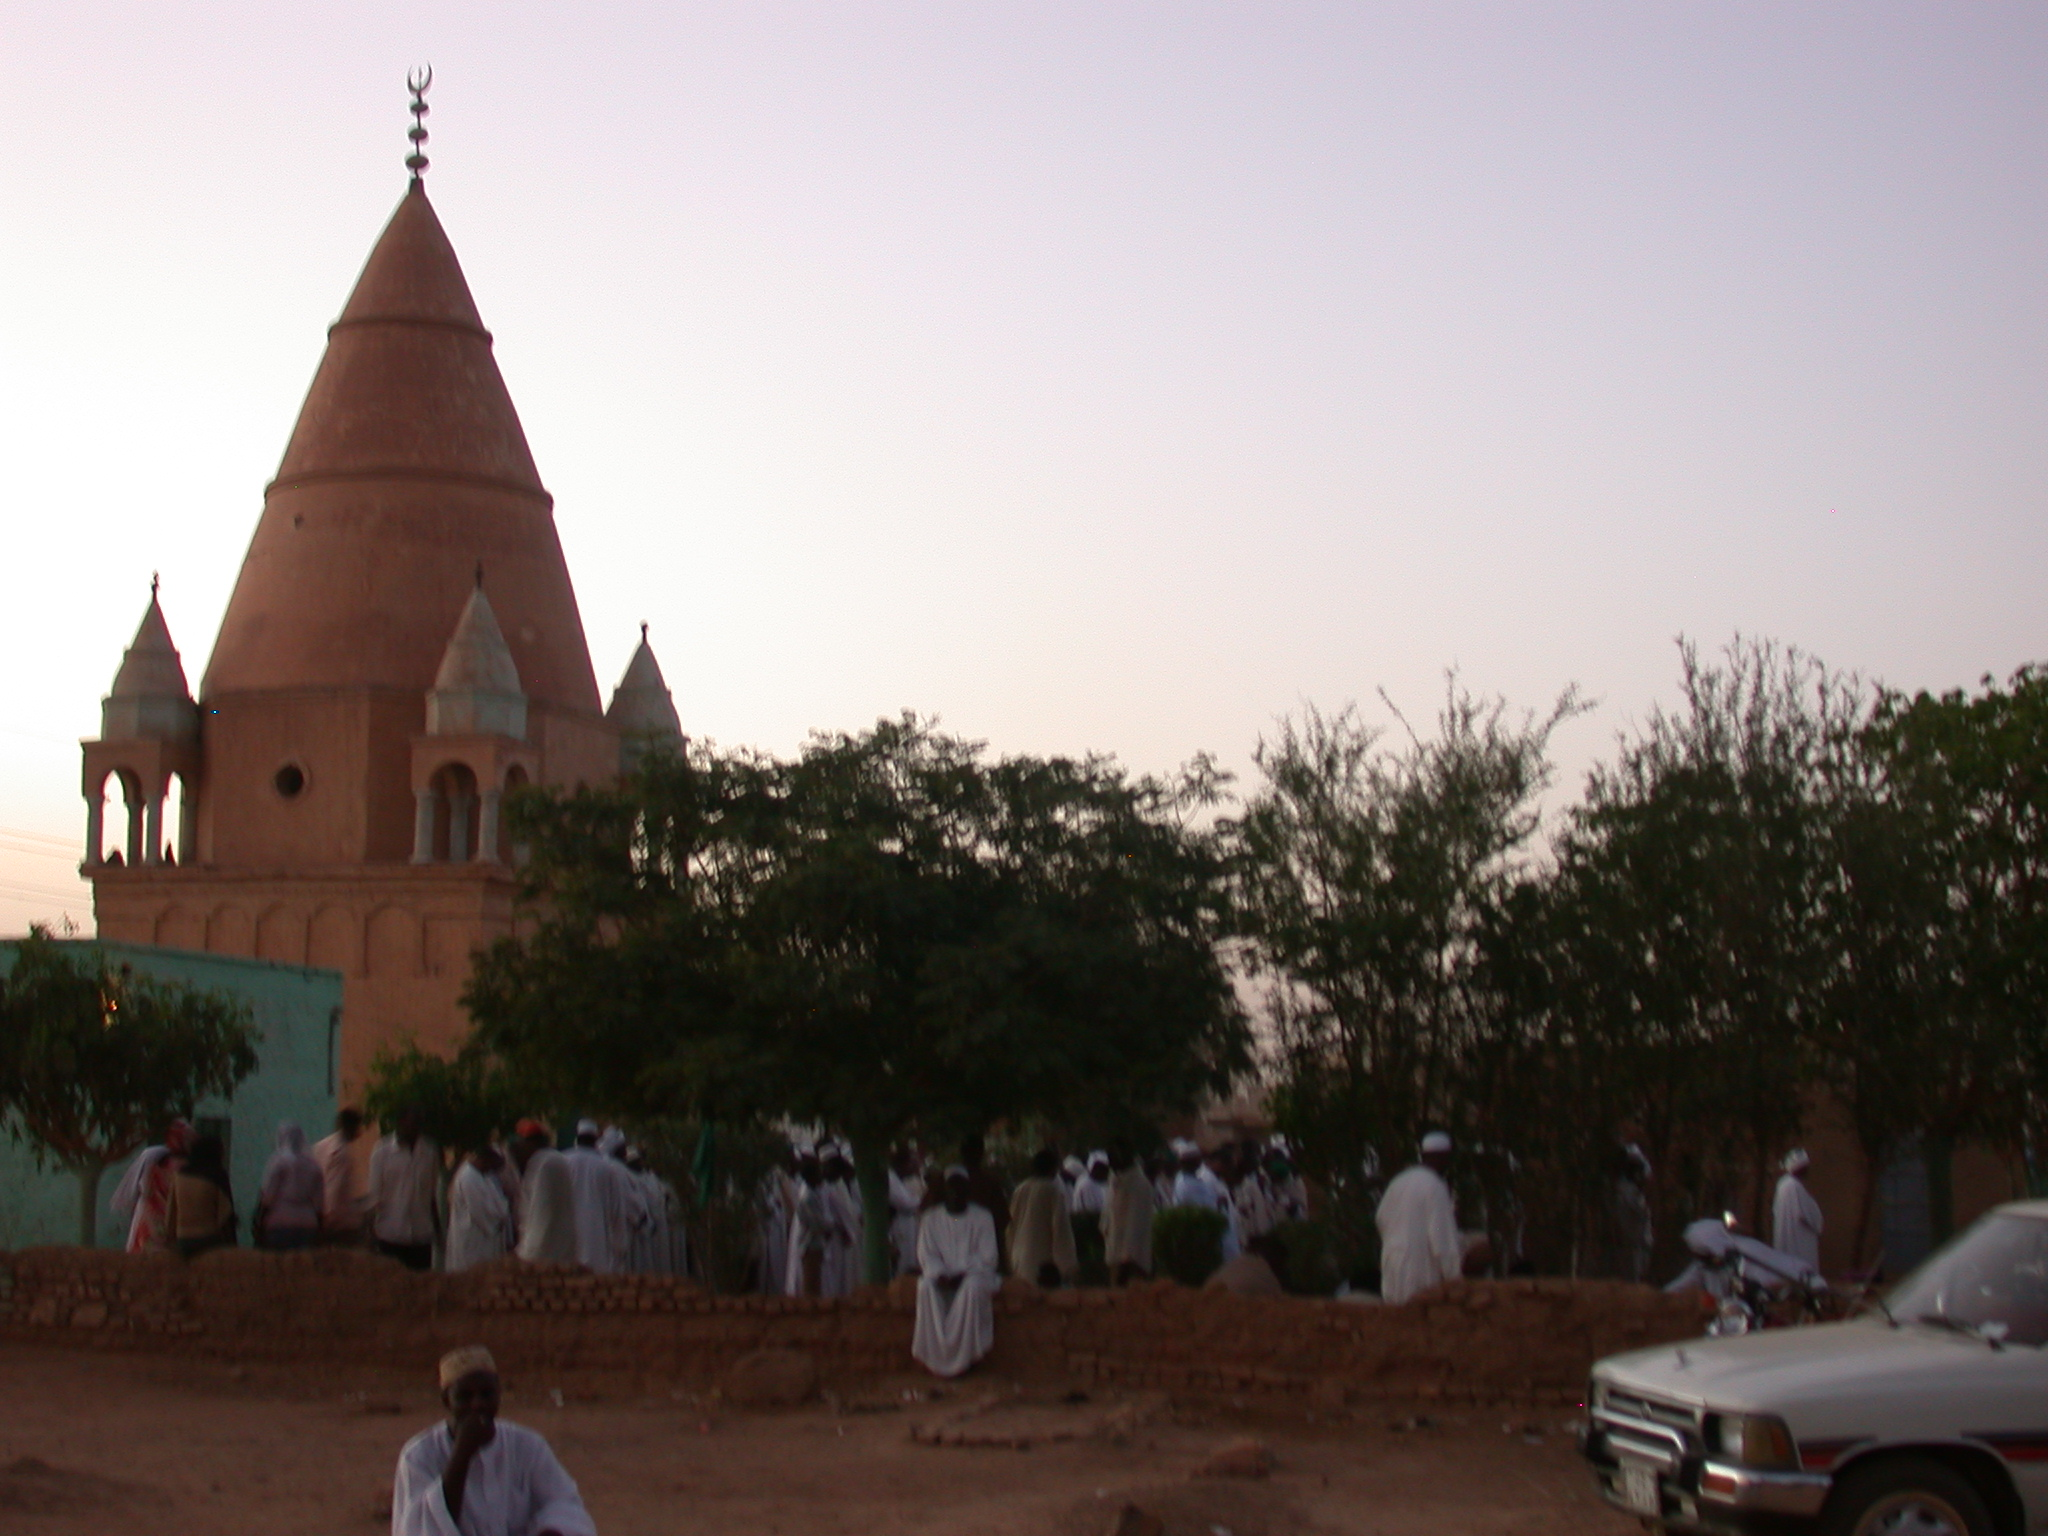 After Sufi Dancing, Omdurman, Sudan